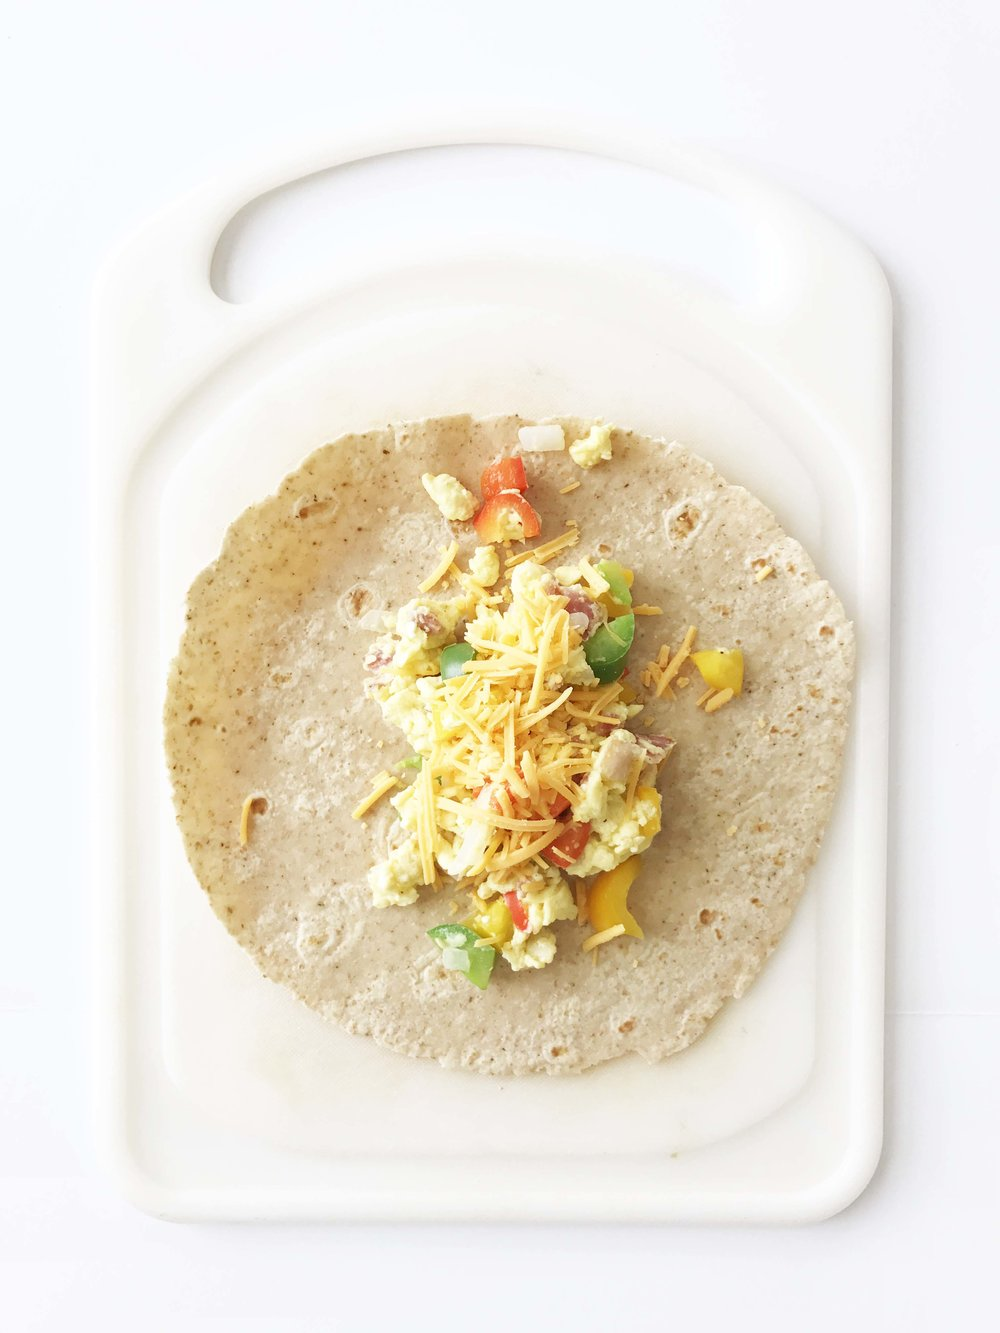 freezer-breakfast-burrito6.jpg